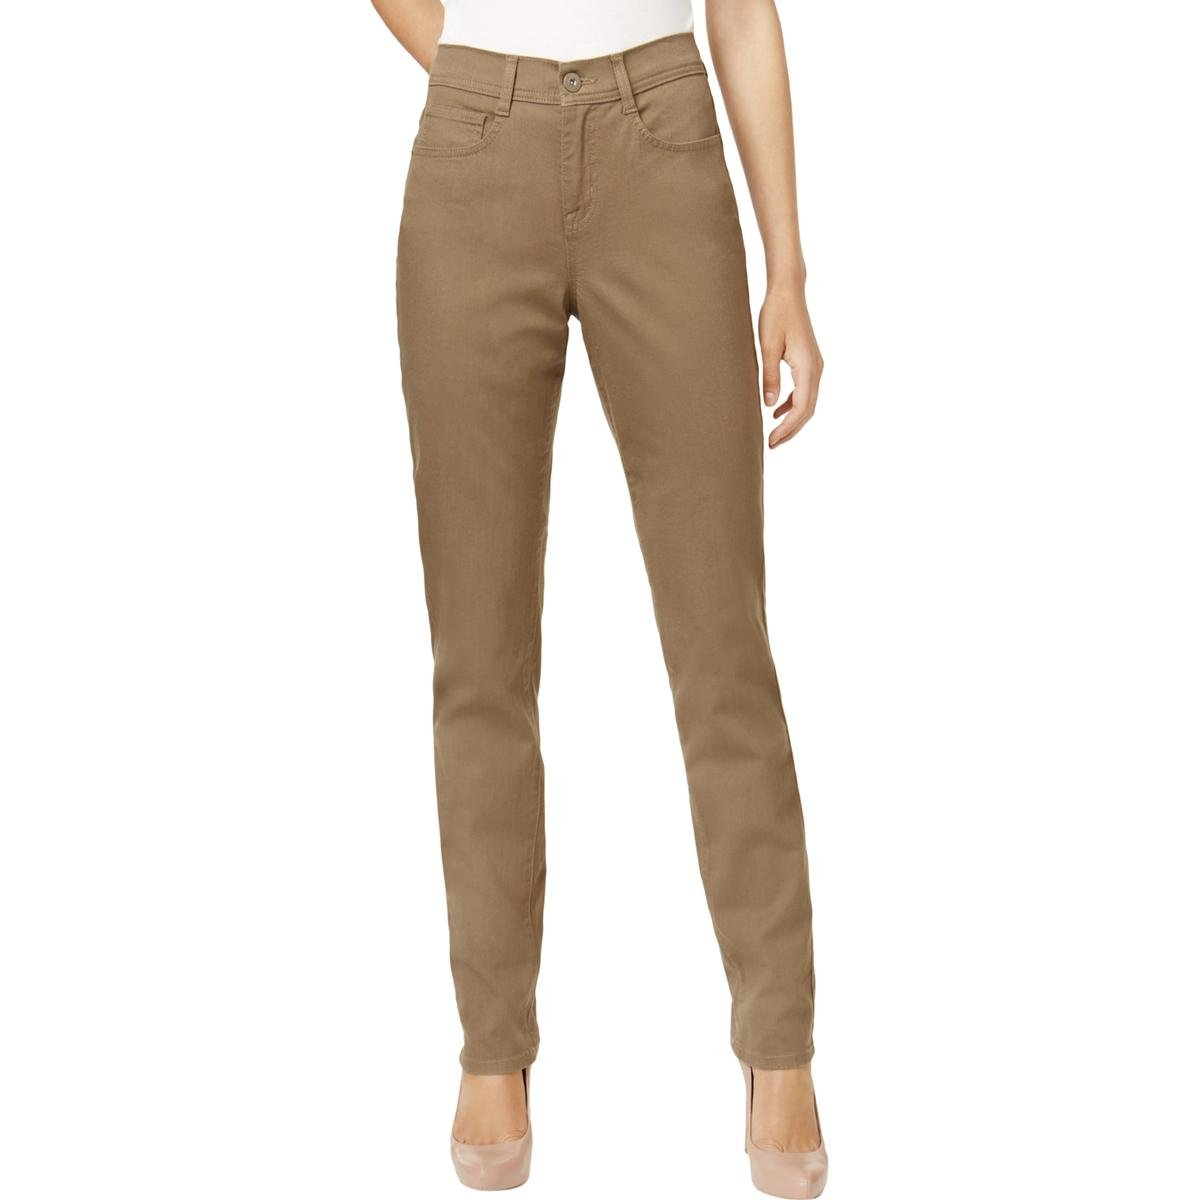 Style & Co. Womens High Rise Tummy Control Slim Jeans Taupe 18